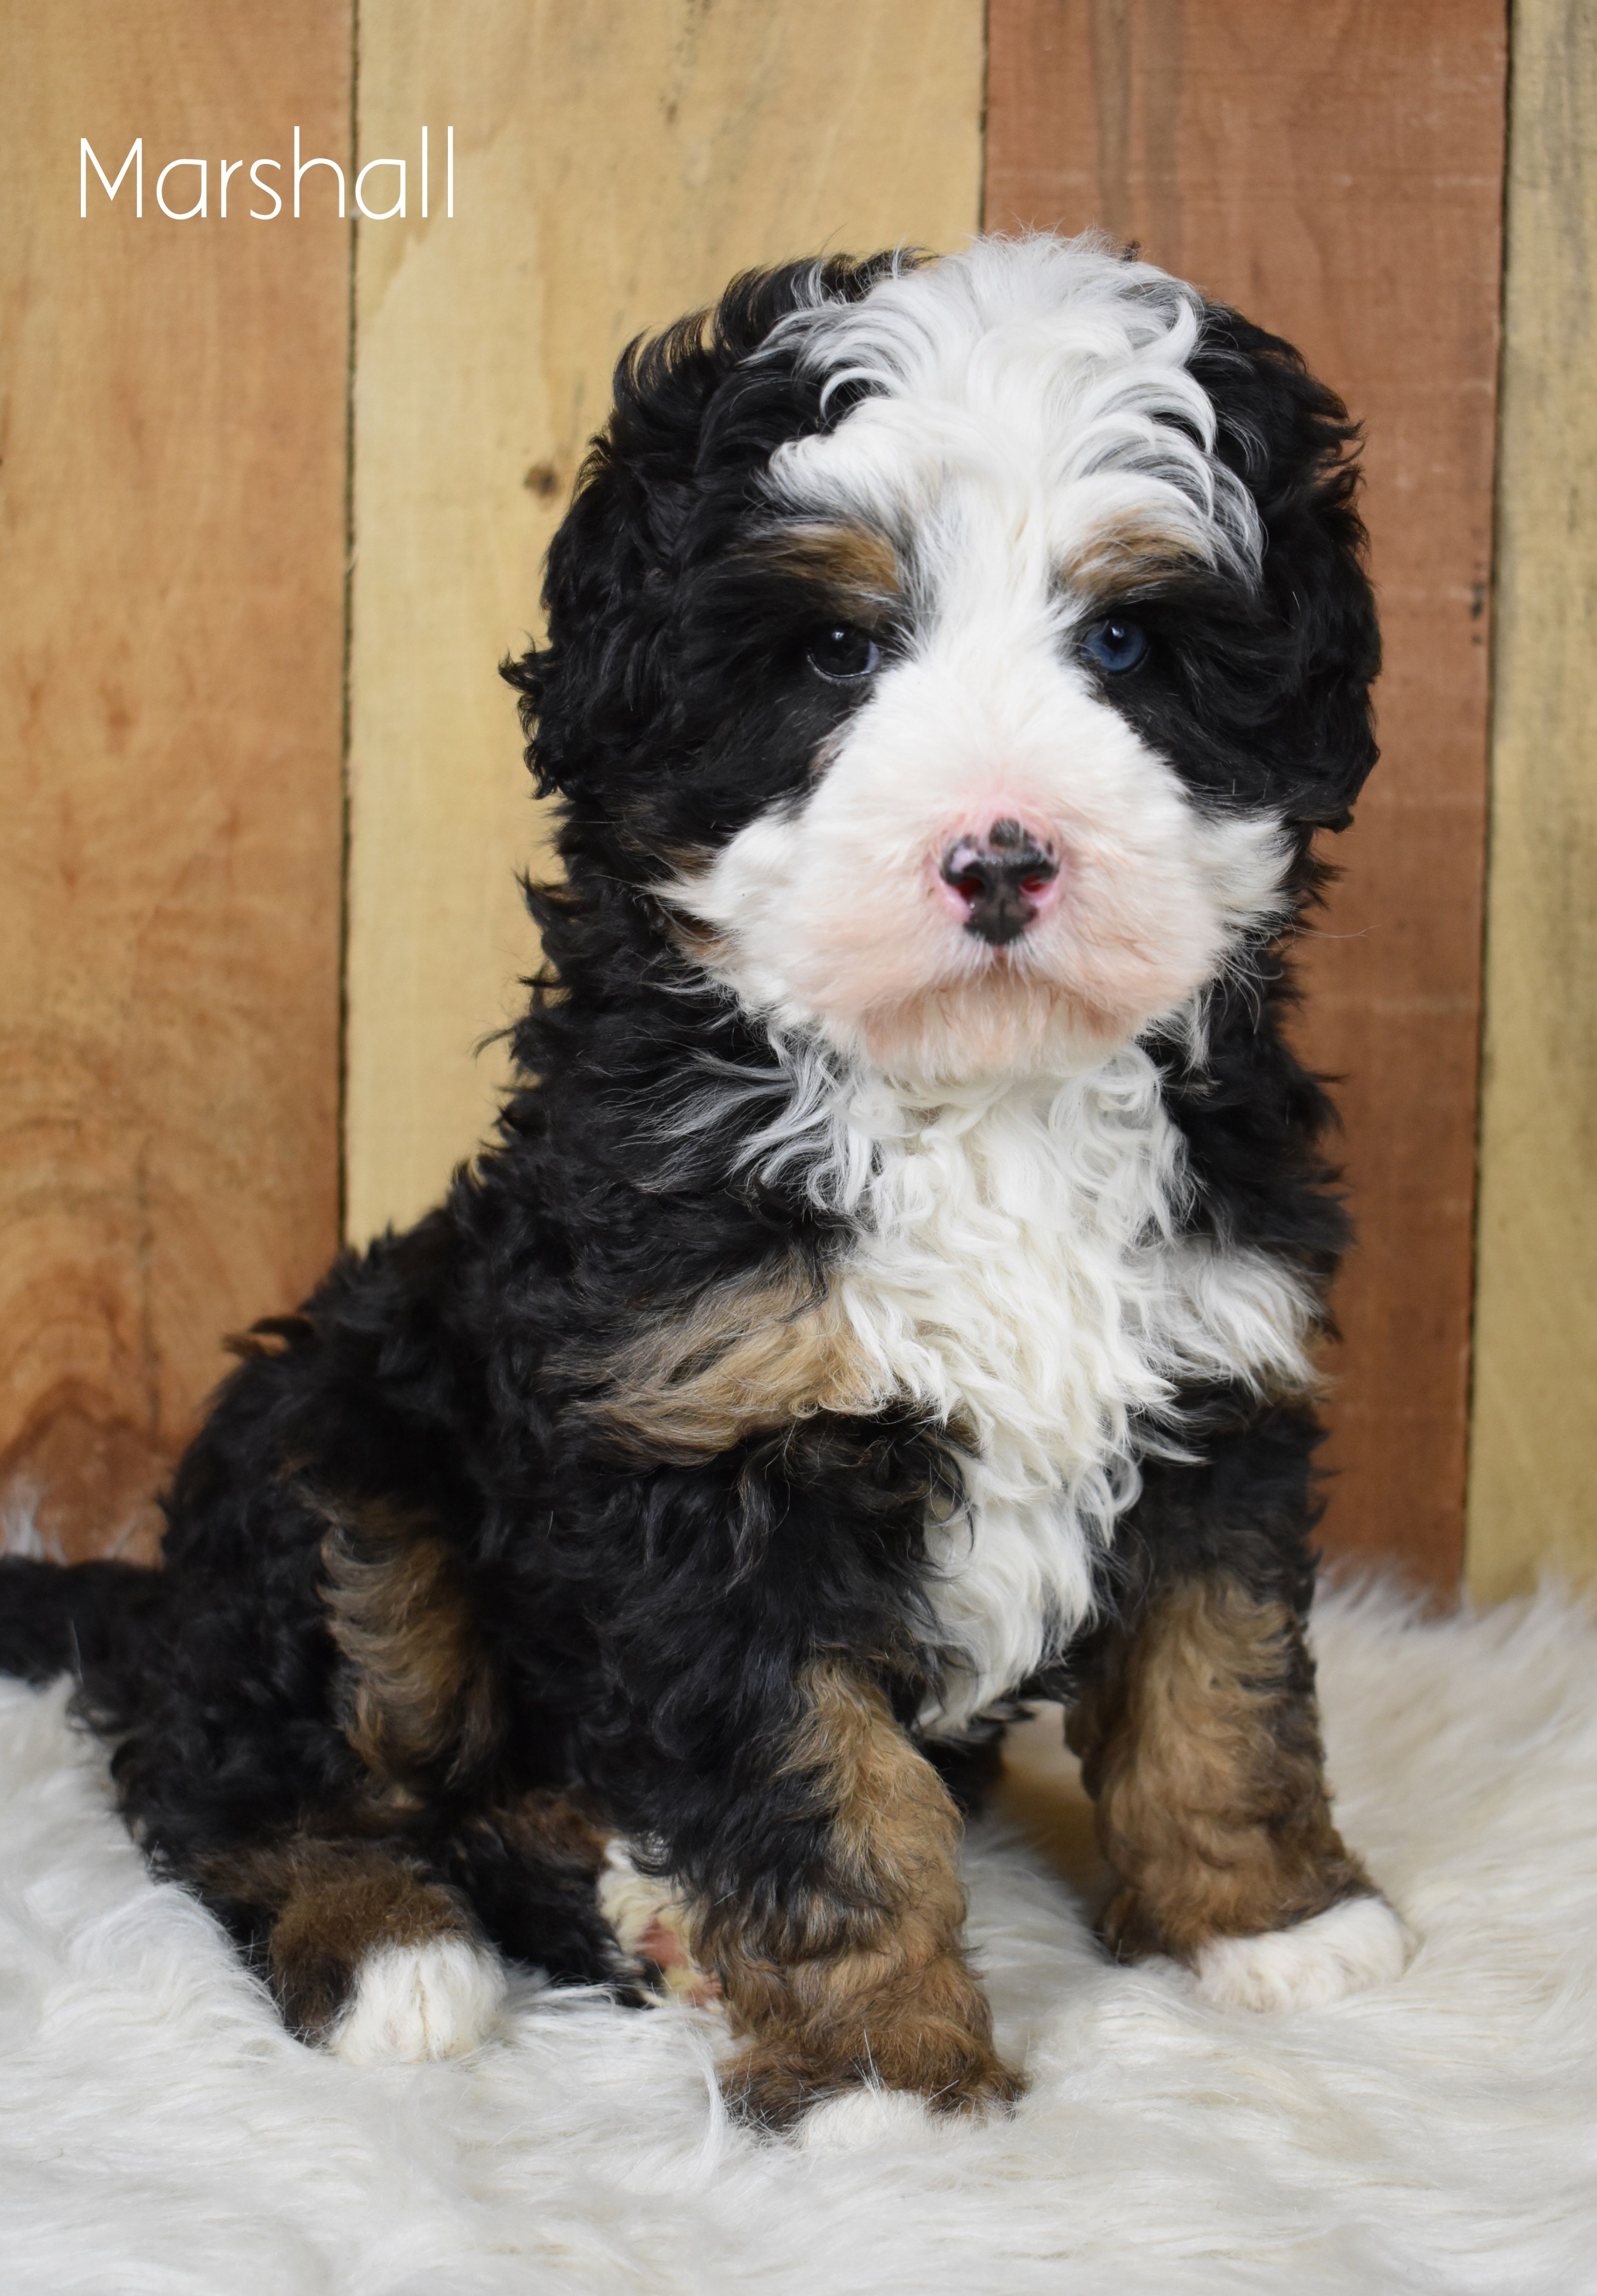 Check Out This Gorgeous Minibernedoodle That Will Meltyourheart With His Cuteness And His Sweet Temper In 2020 Bernedoodle Puppy Mini Bernedoodle Bernedoodle